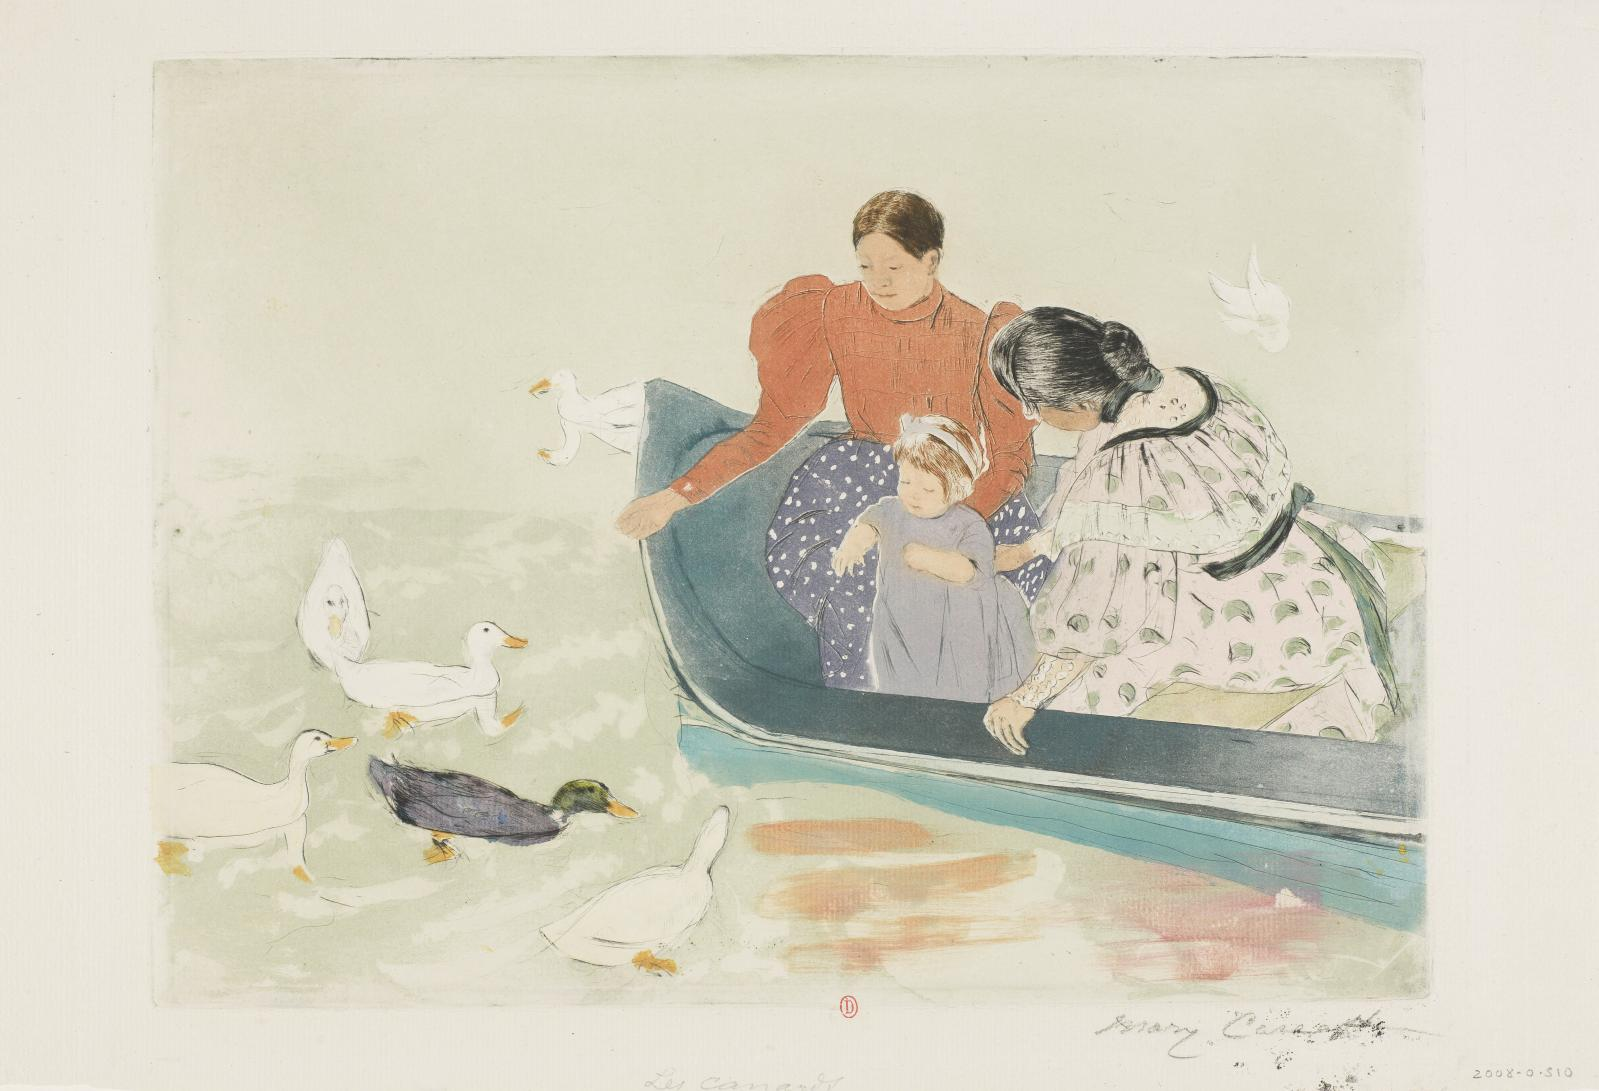 """Le Repas des canards"", c. 1895, drypoint, soft varnish, coloured aquatint with watercolour highlights, 29.9 x 40 cm, Paris, library of the Institut N"